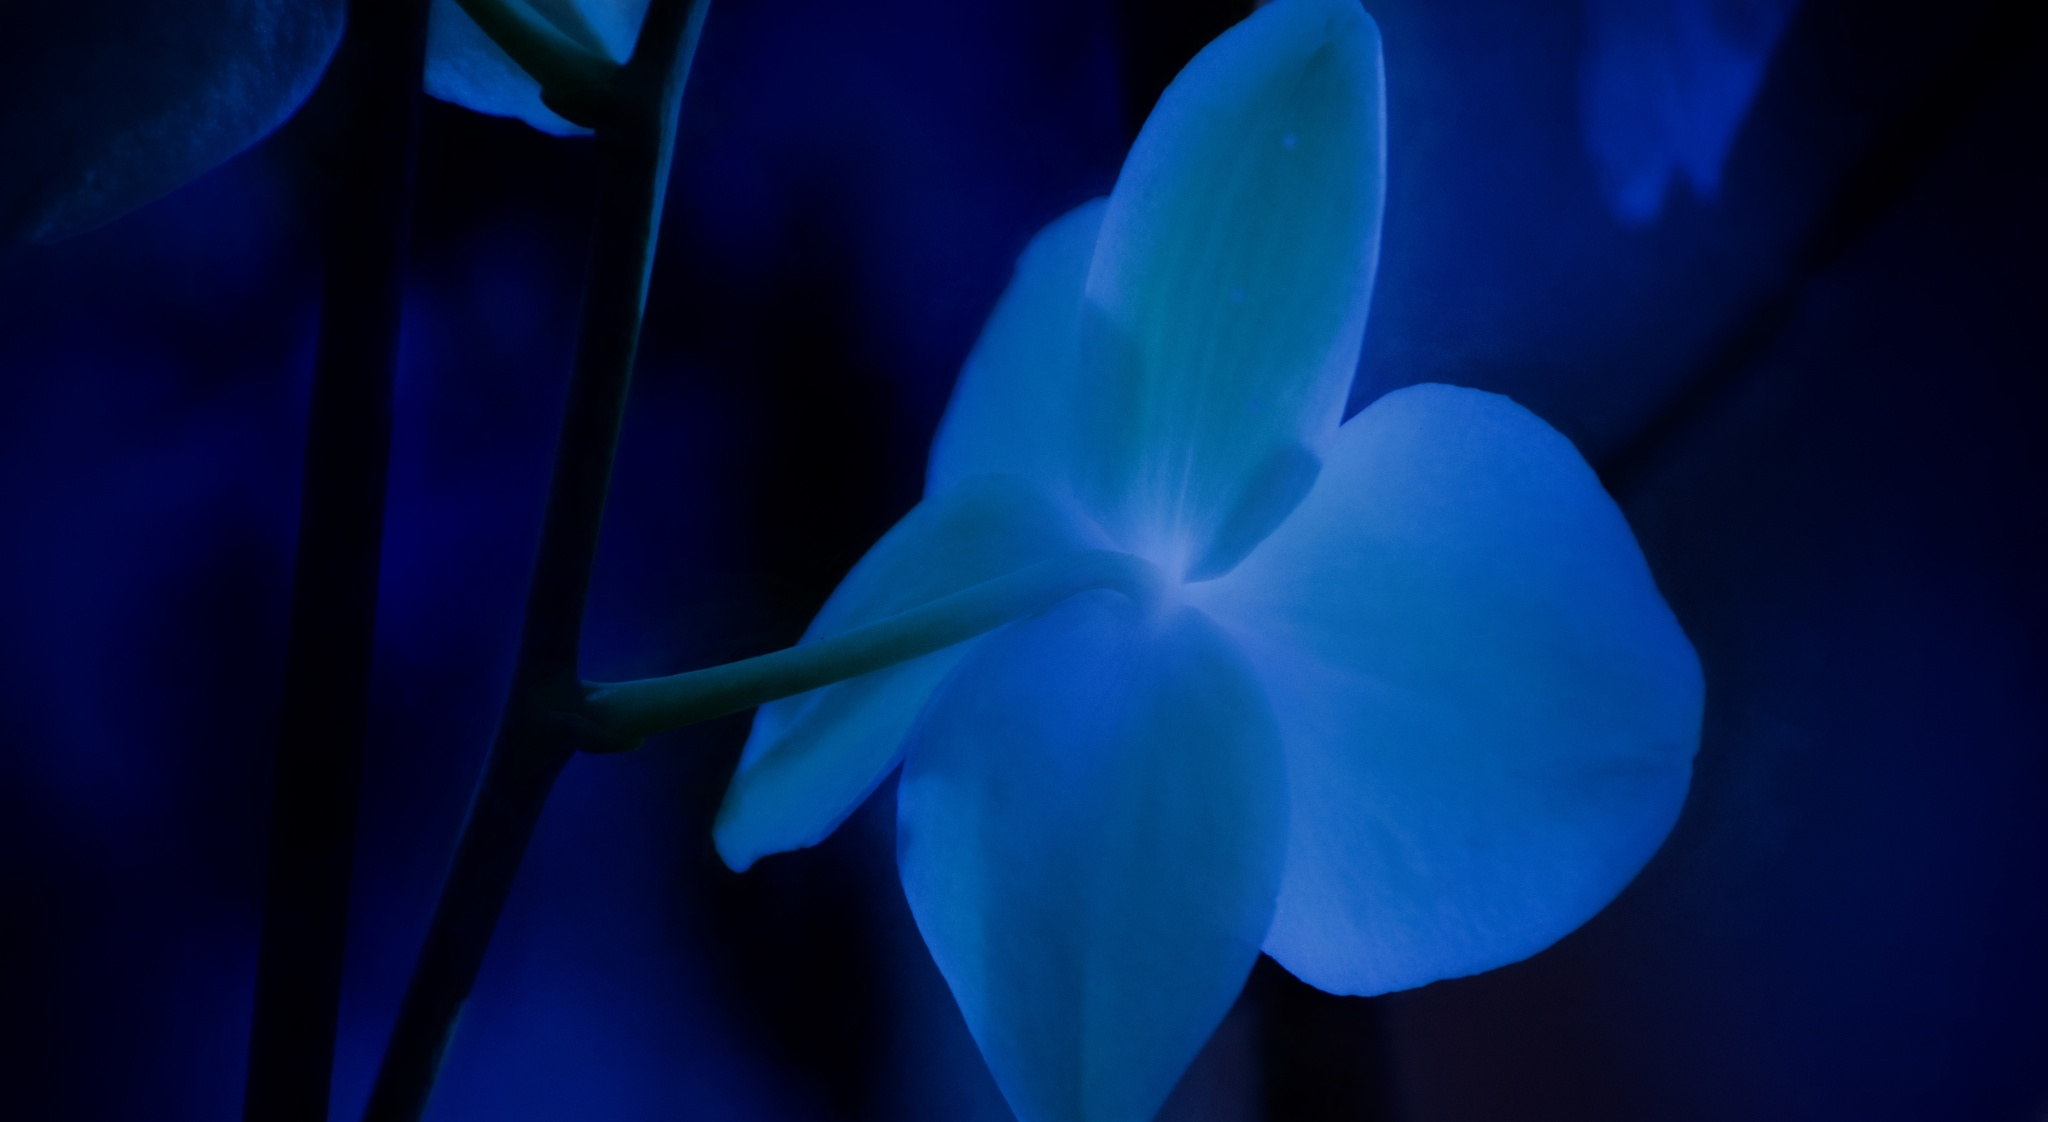 Orchid Glow by JohnEllingson